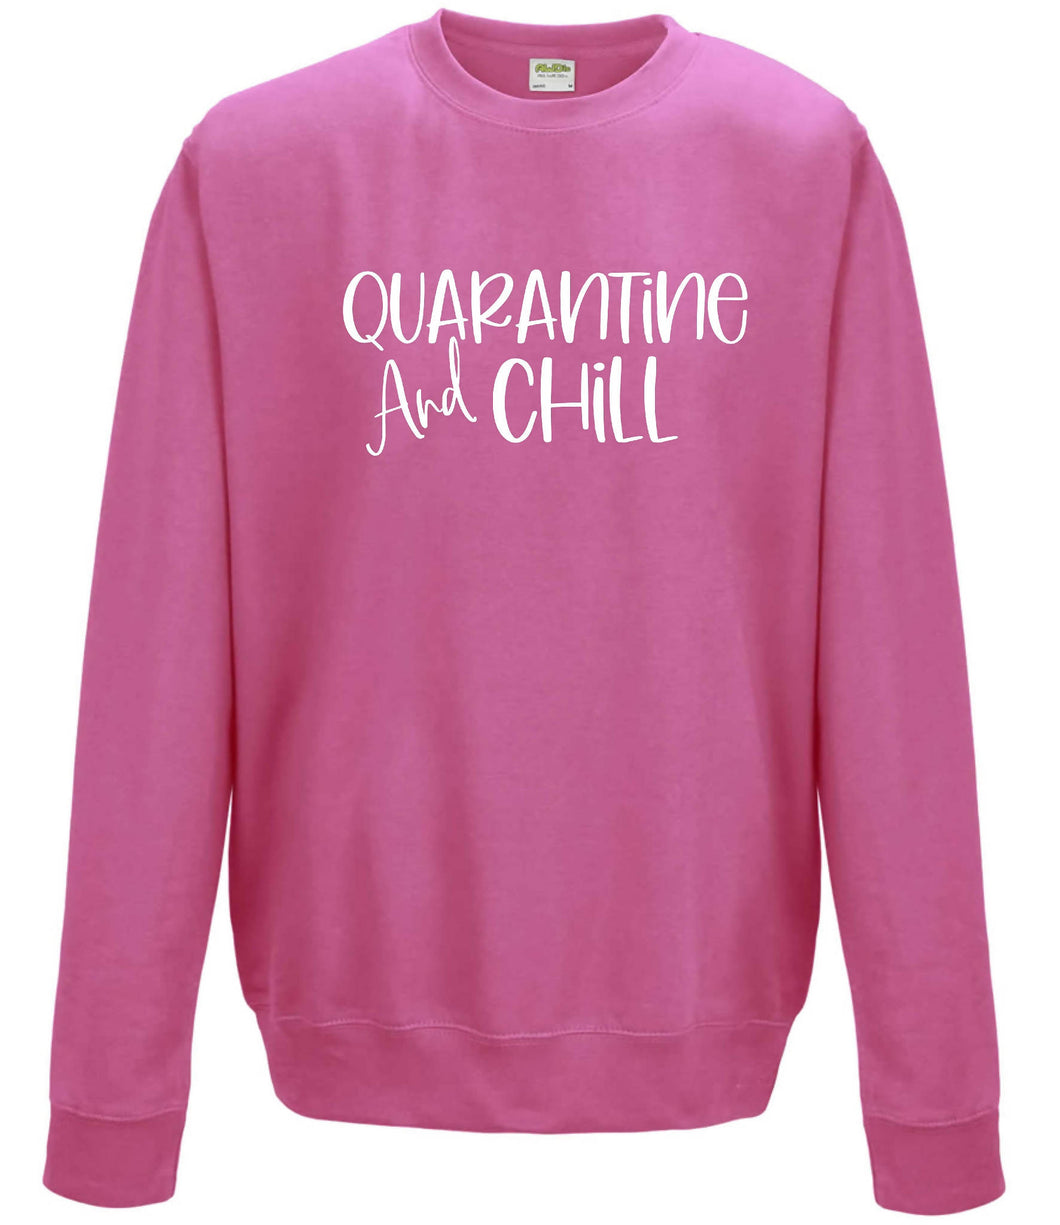 Ladies Sweatshirt Quarantine & Chill